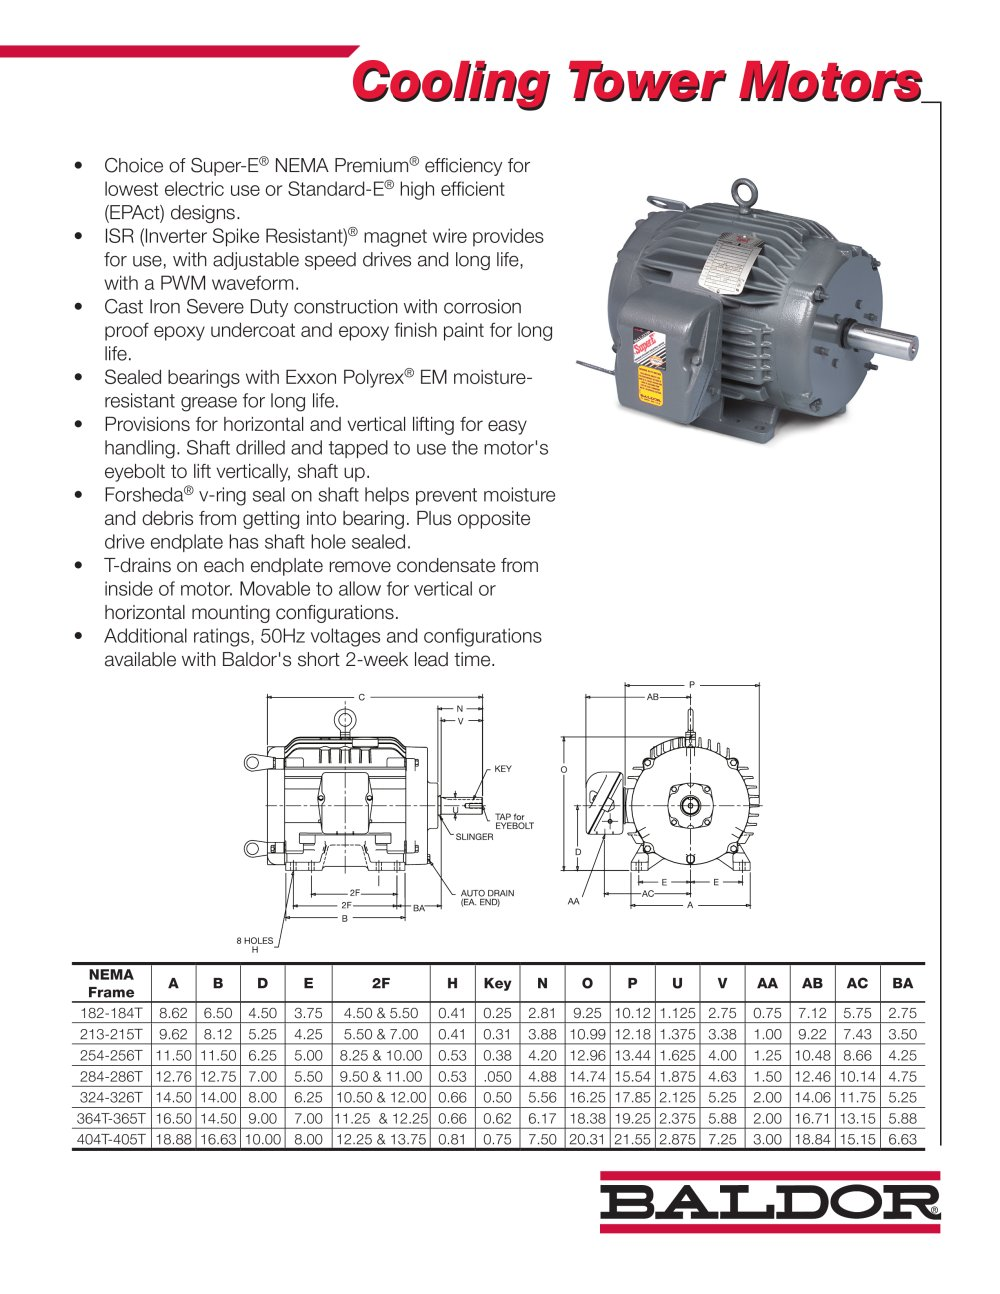 Cooling Tower Motors - 1 / 2 Pages